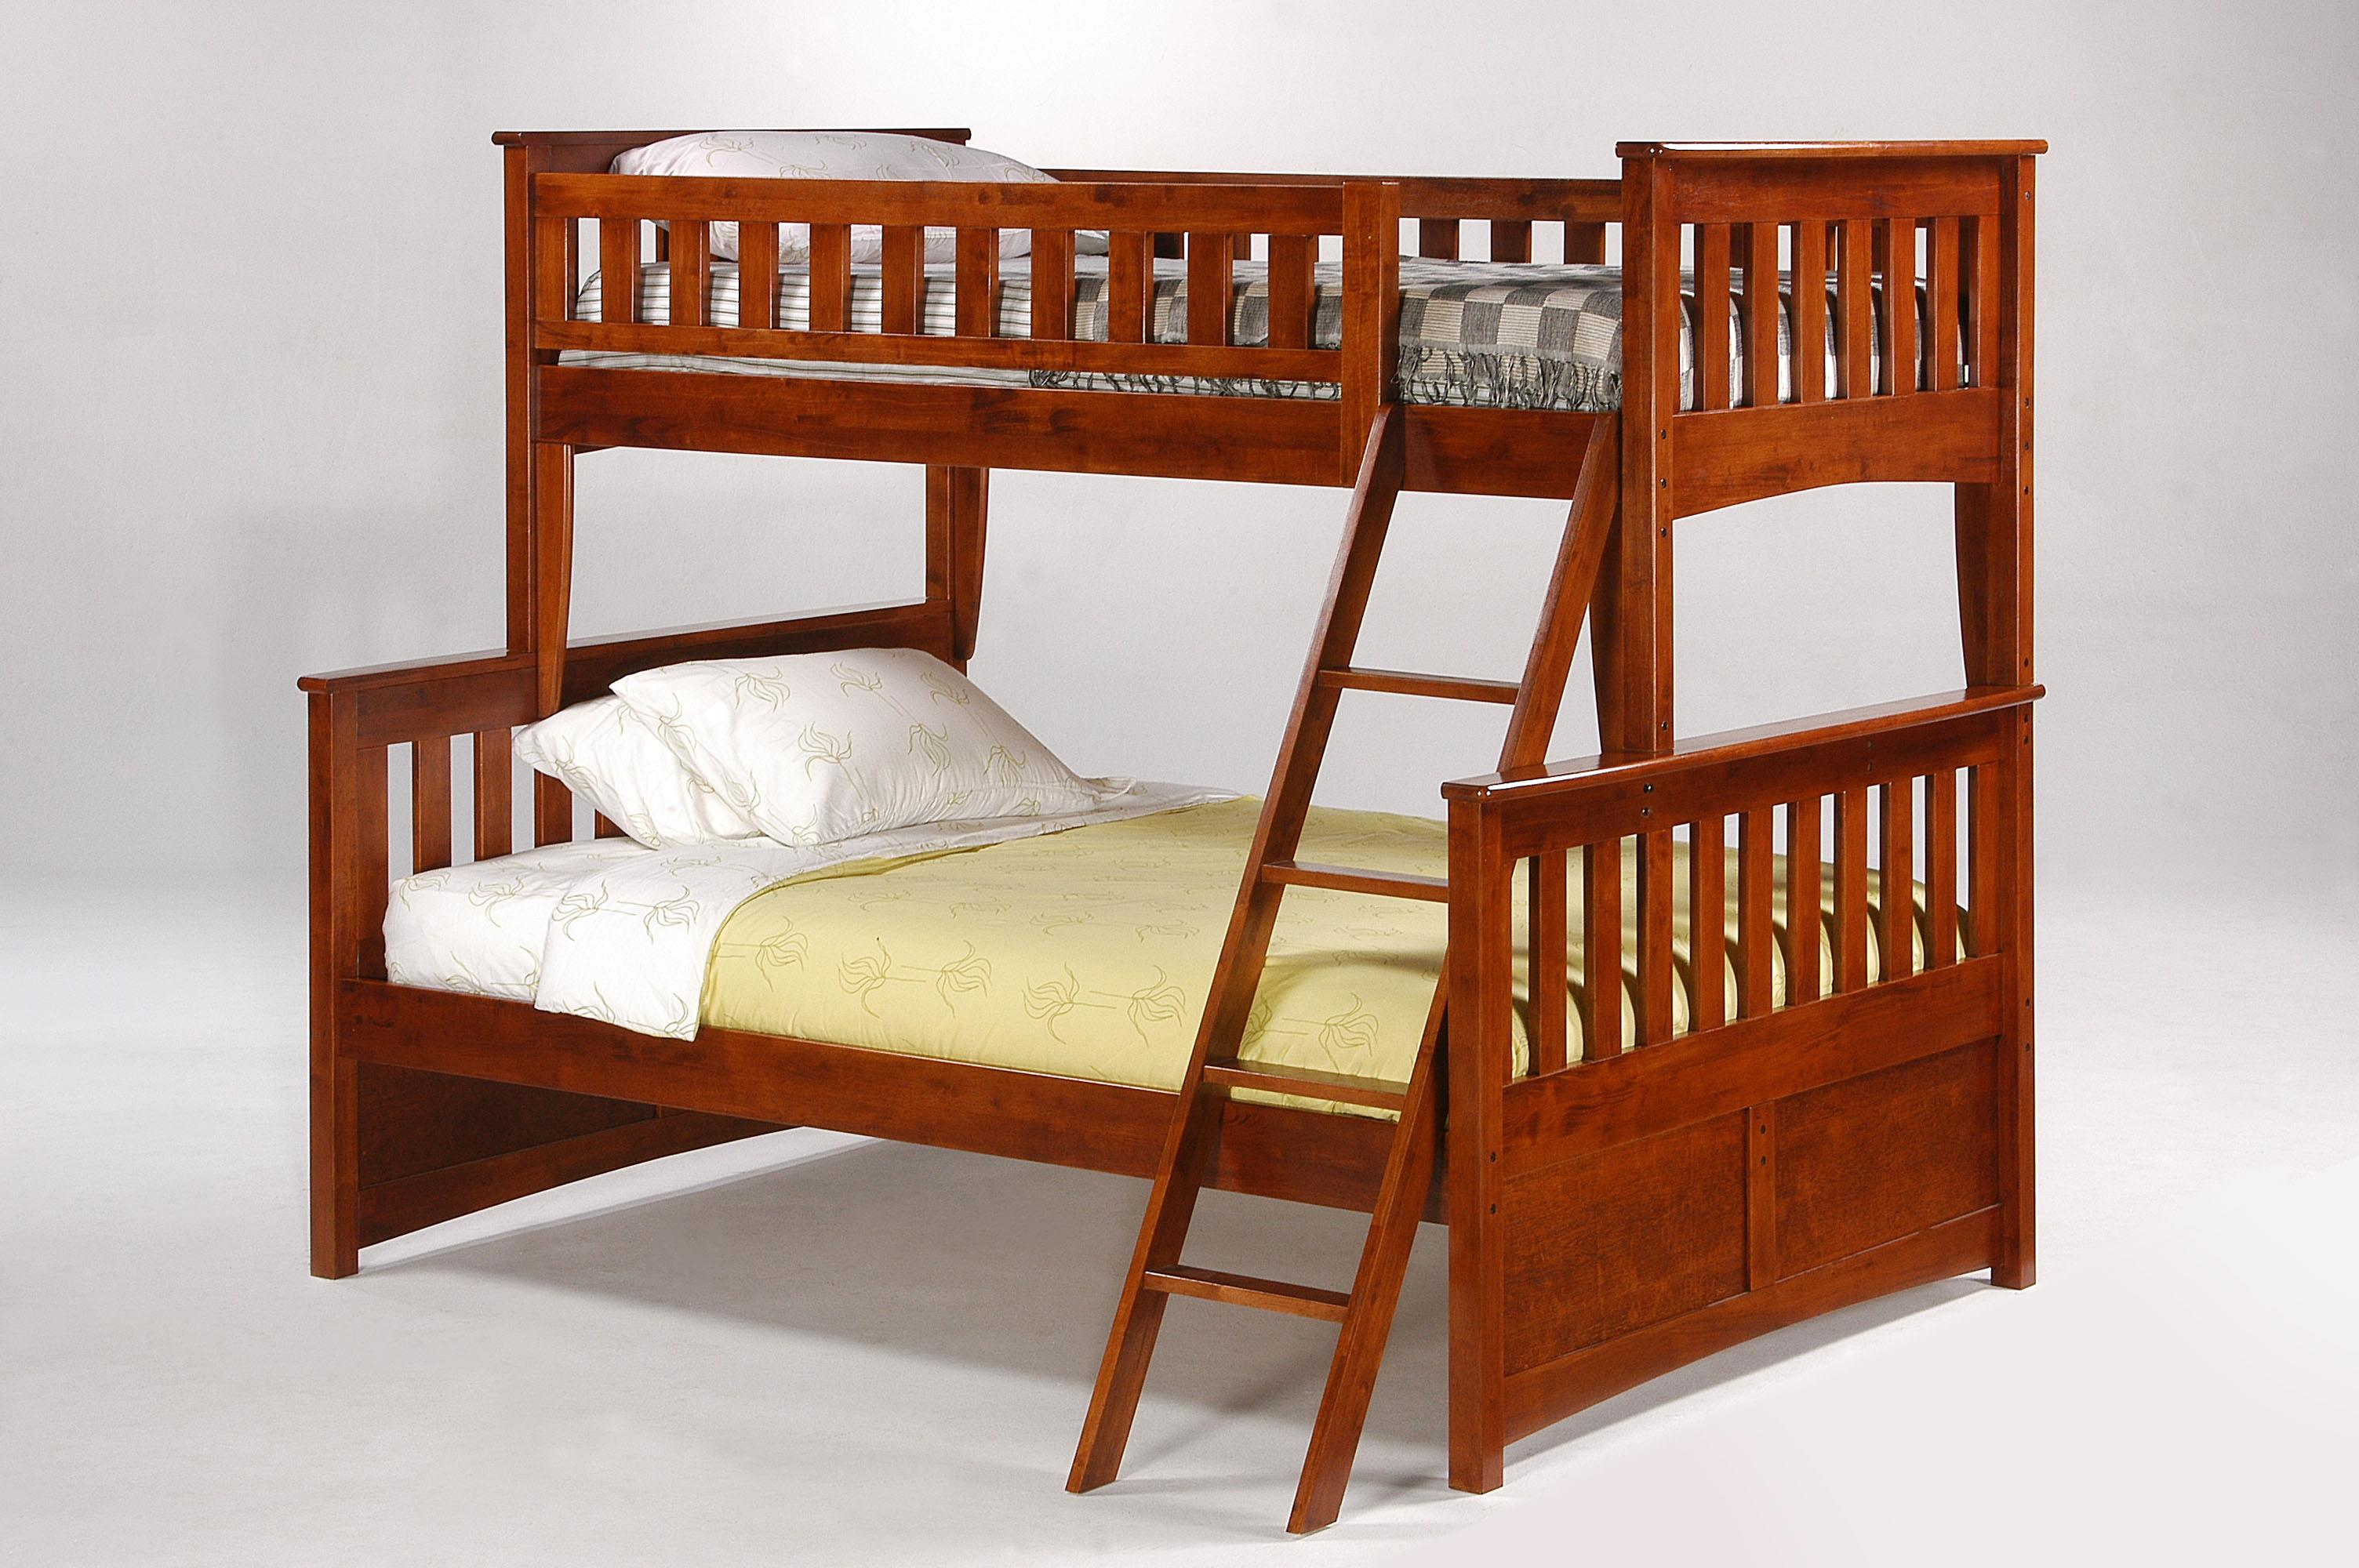 Pacific Manufacturing Ginger Twin over Full Bunk Bed - Item Number: PBTF1-GIN-CH Ginger-Cherry